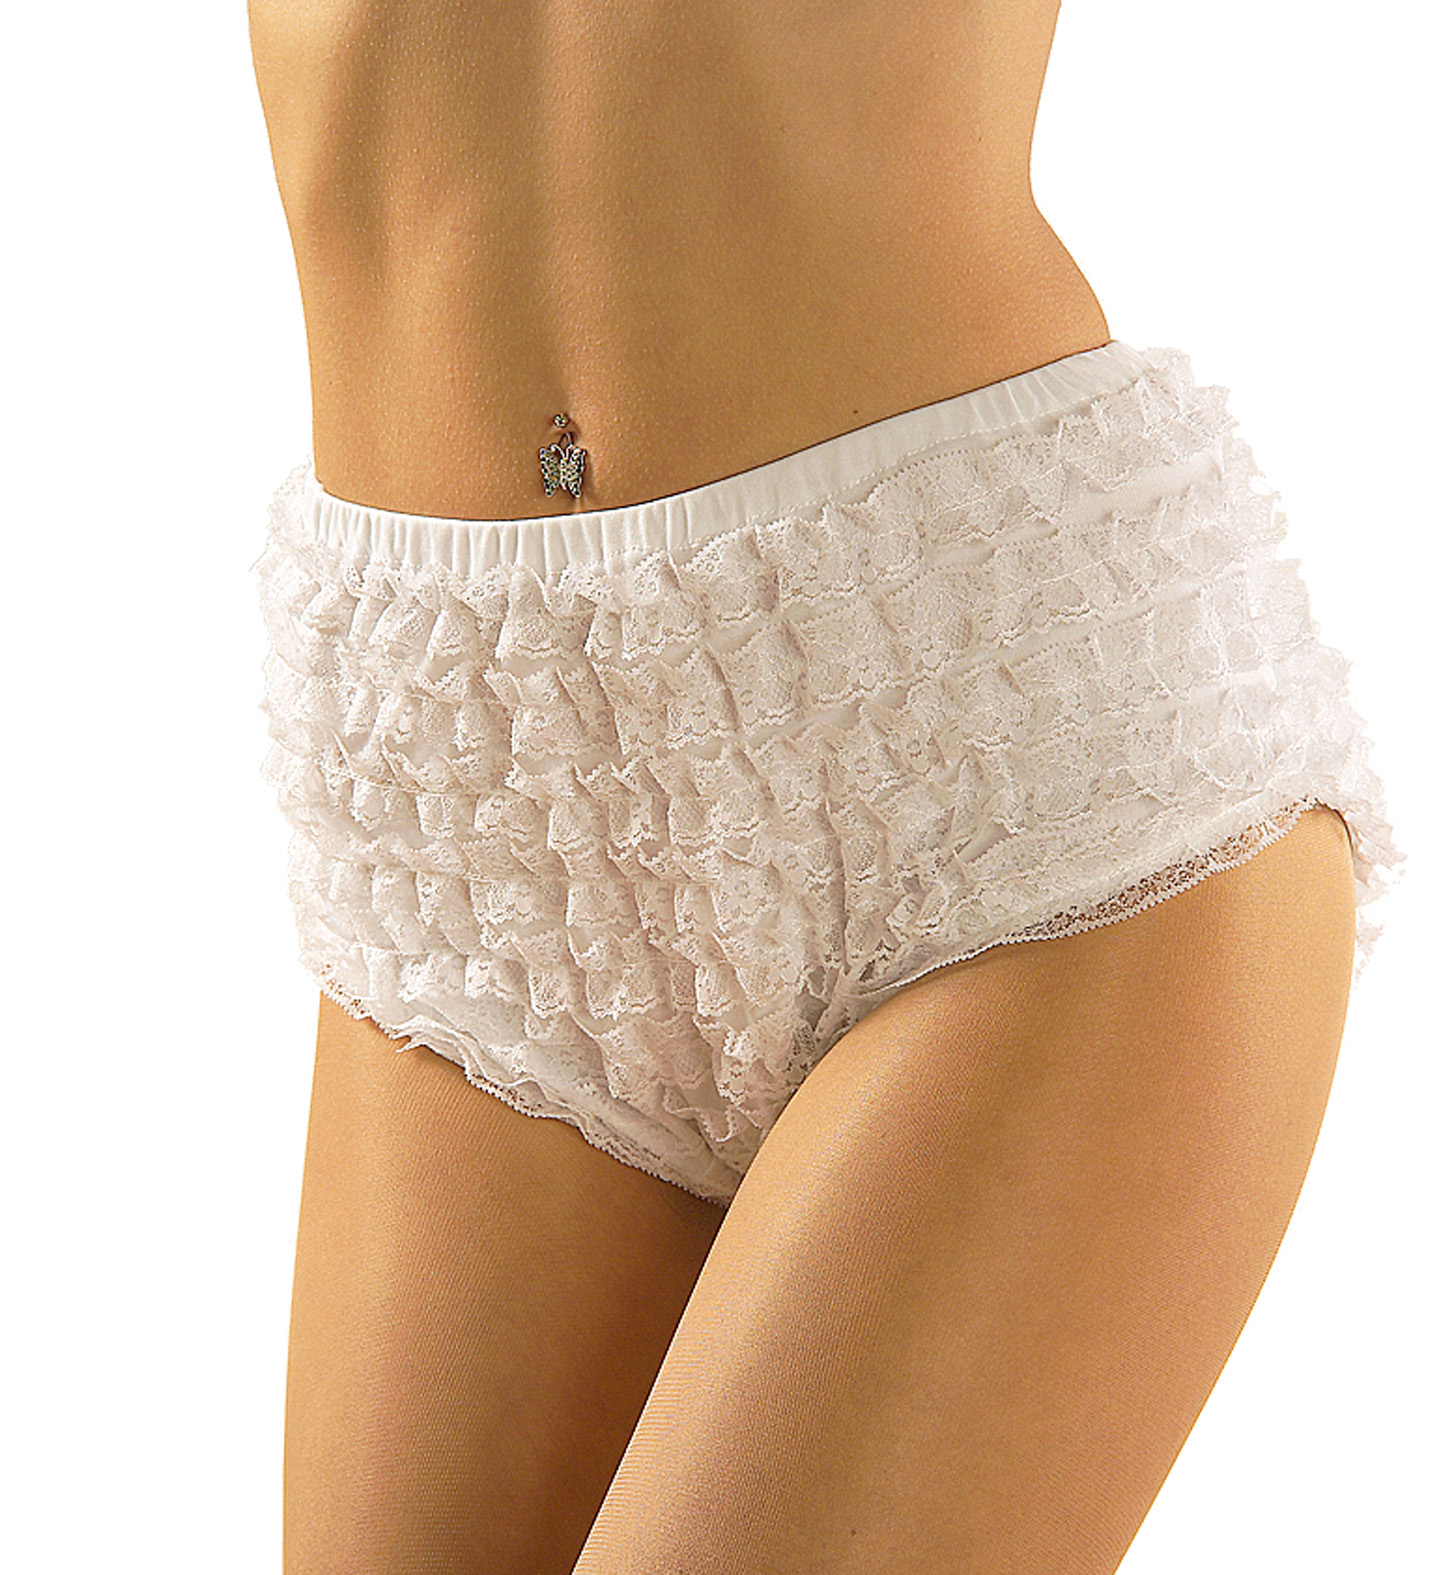 Lace Panties Trouser Pants Cowboy Wild West Fancy Dress